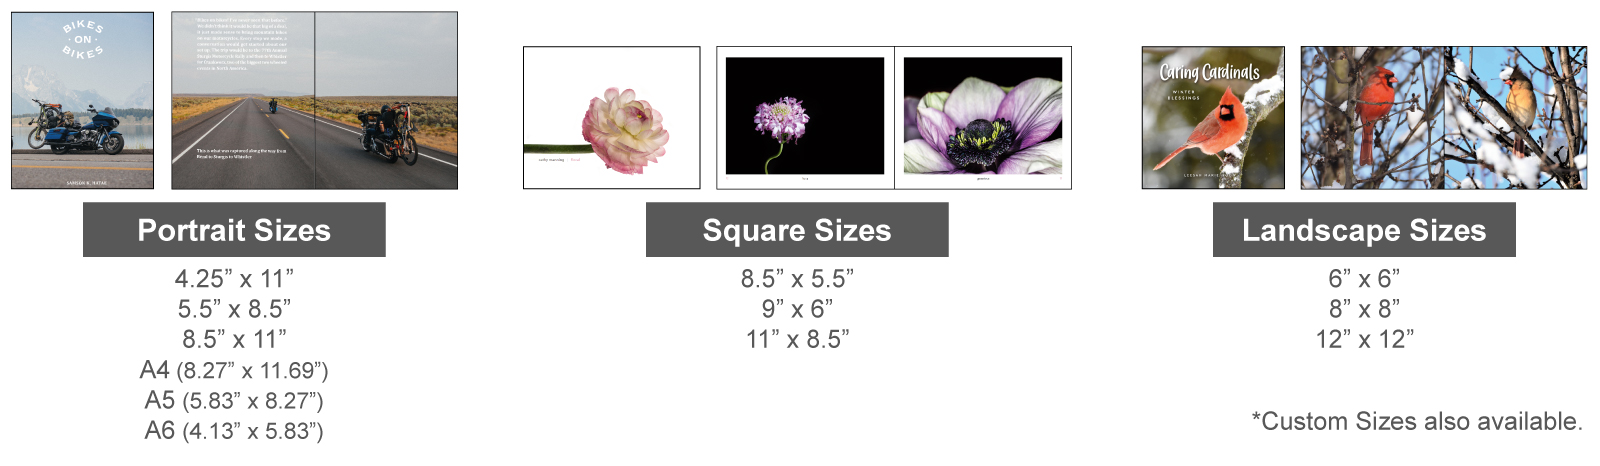 coffee table book sizes